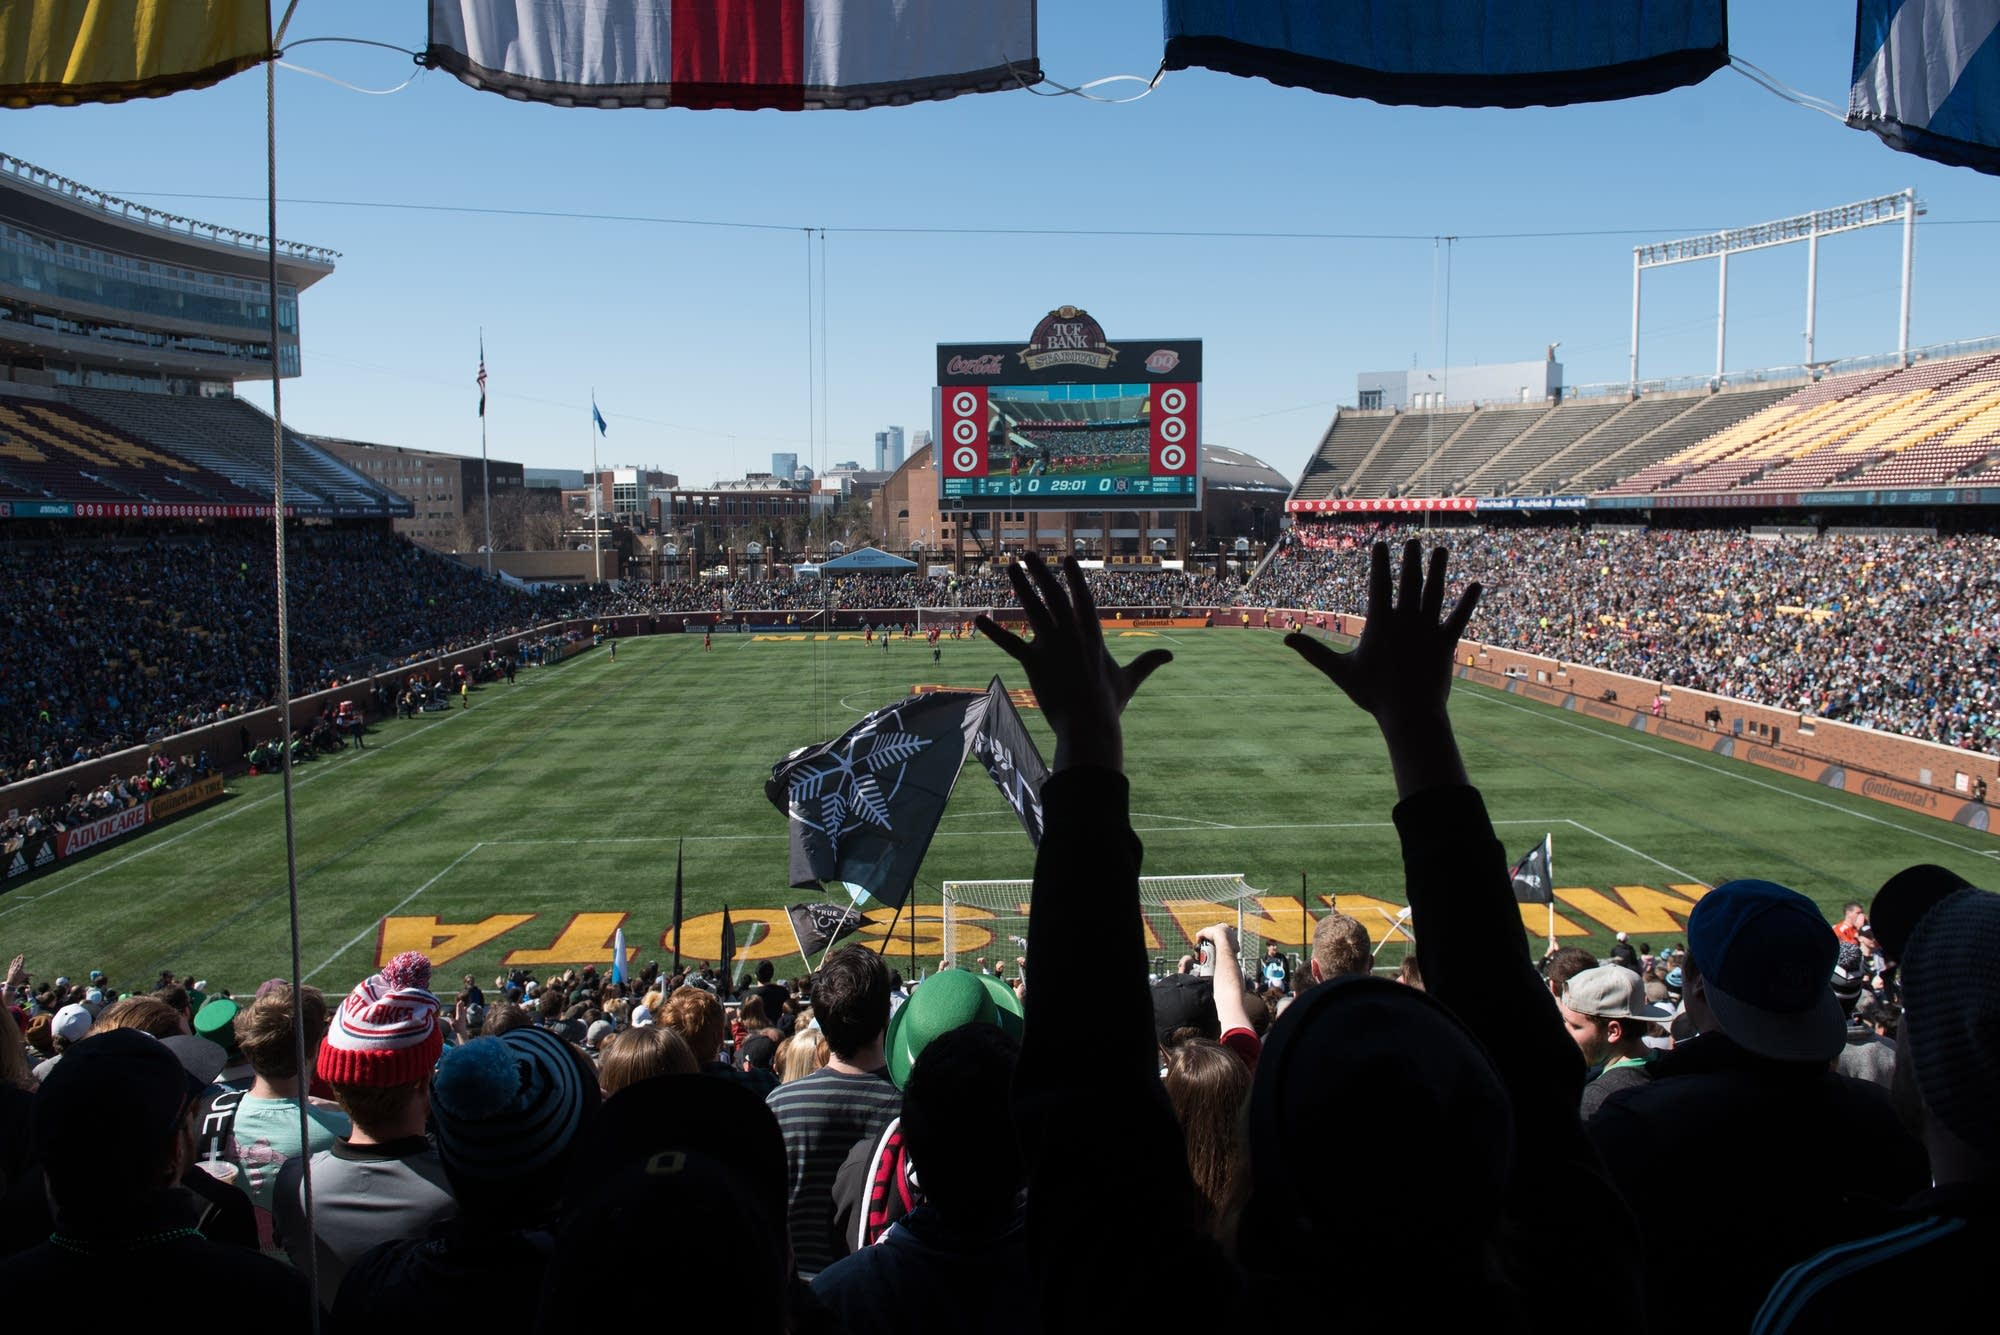 The Minnesota United FC defeated the Chicago Fire 2-1 in the season opener.